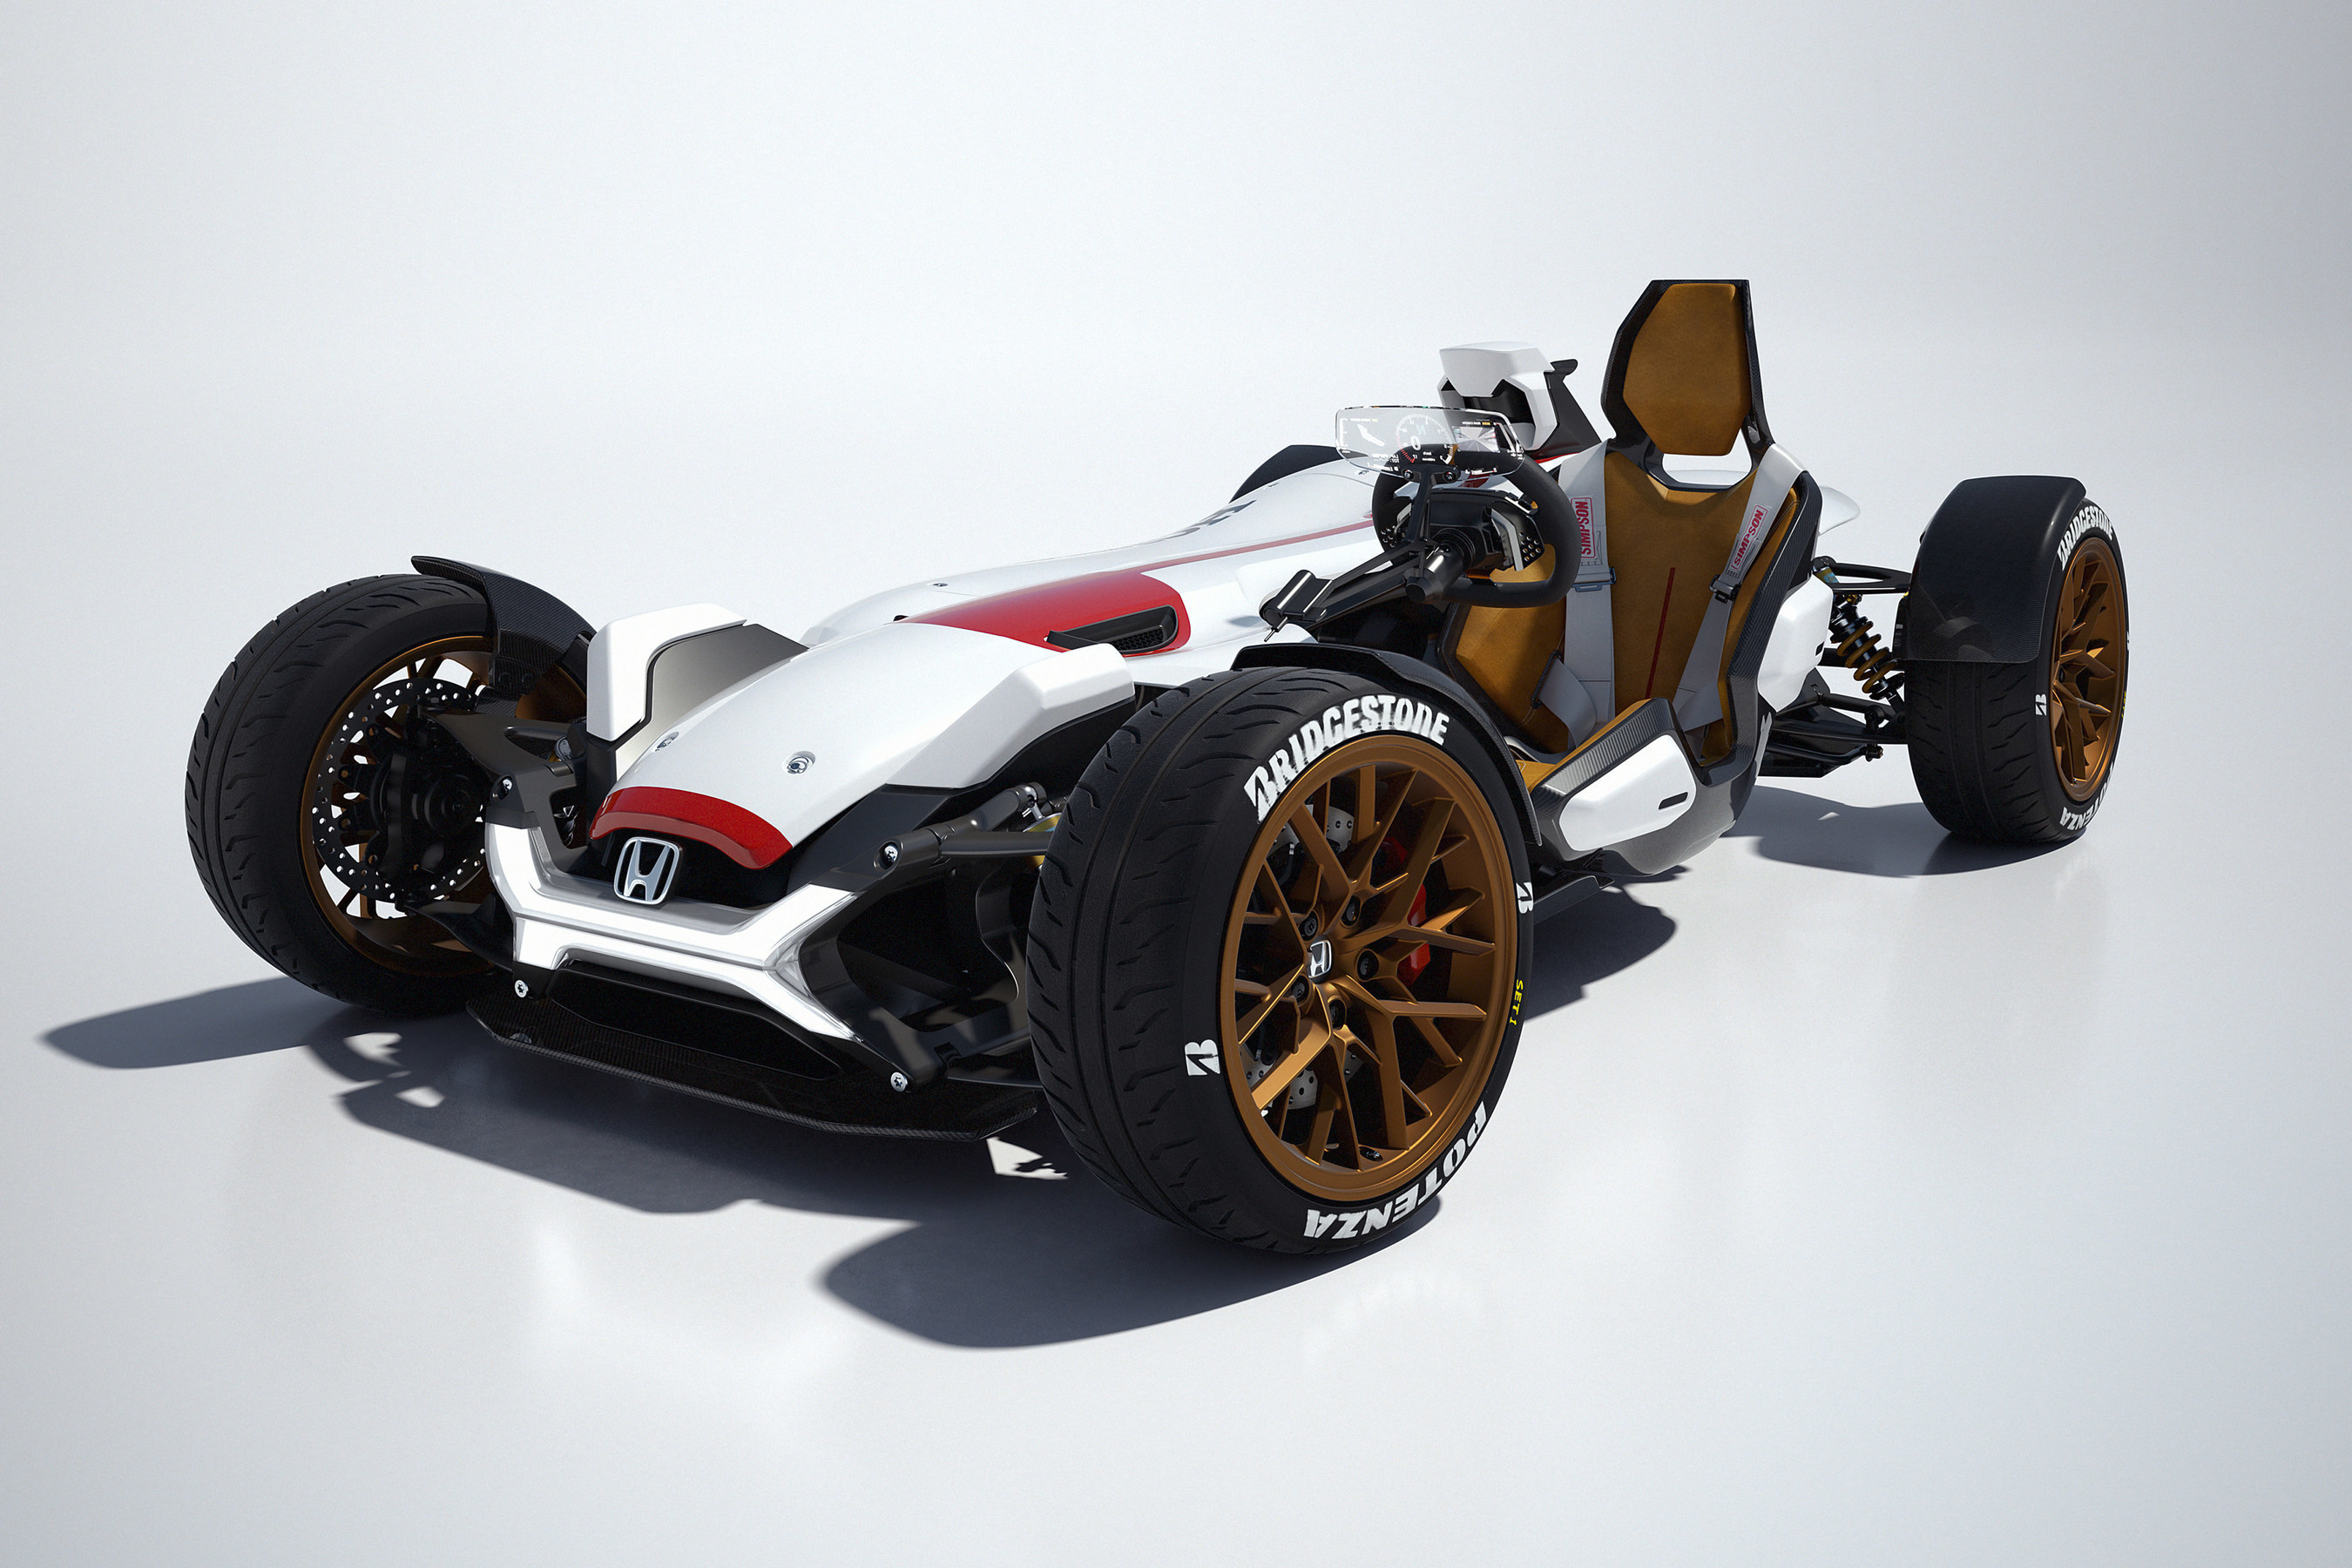 Honda's Motorcycle and Automobile Engineering Prowess Combine in the Honda Project 2&4 Shown at the Los Angeles Auto Show